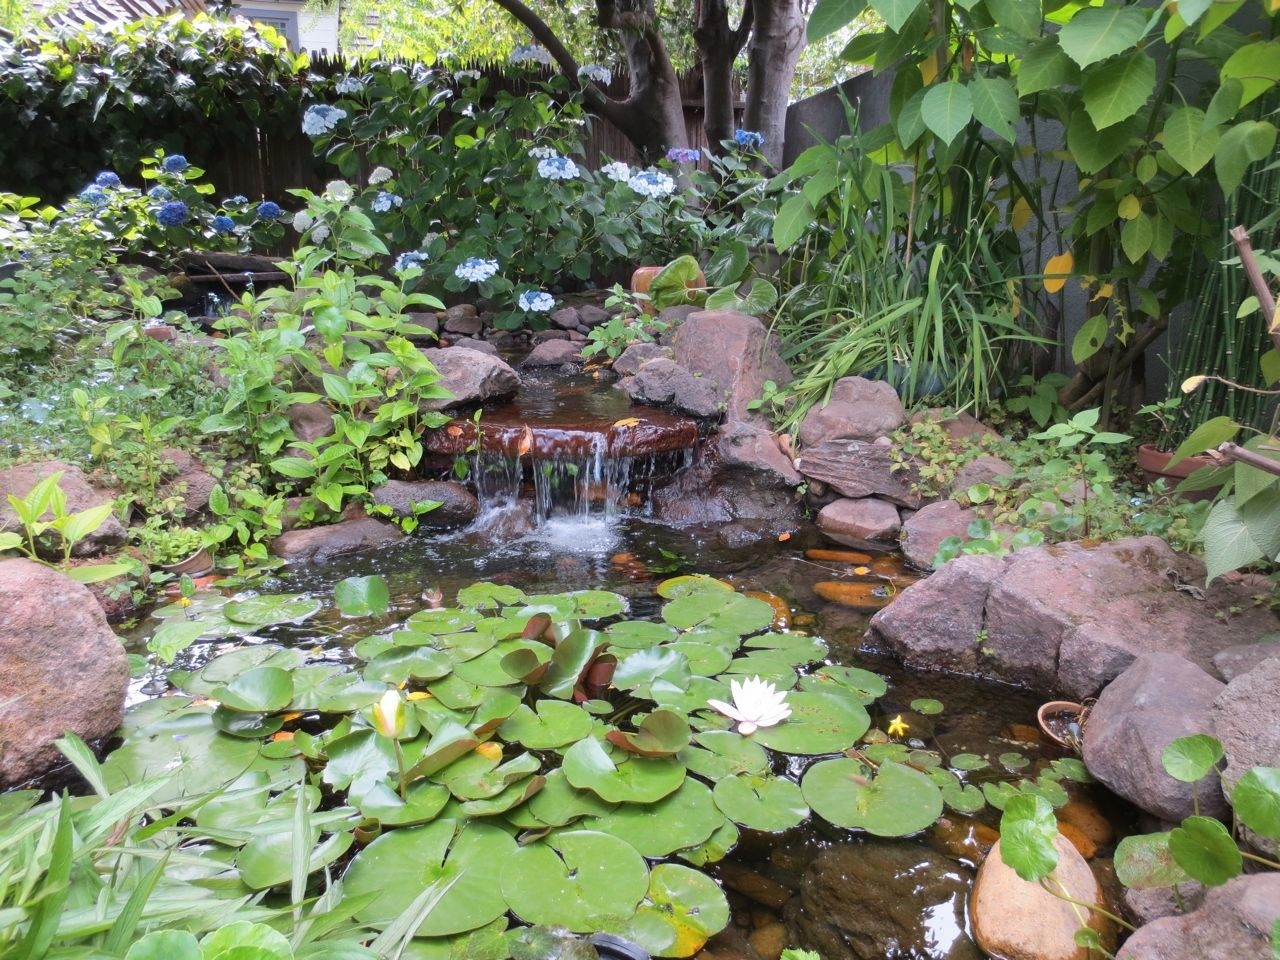 garden-water-fountain-20141107123433-545cbc592e833